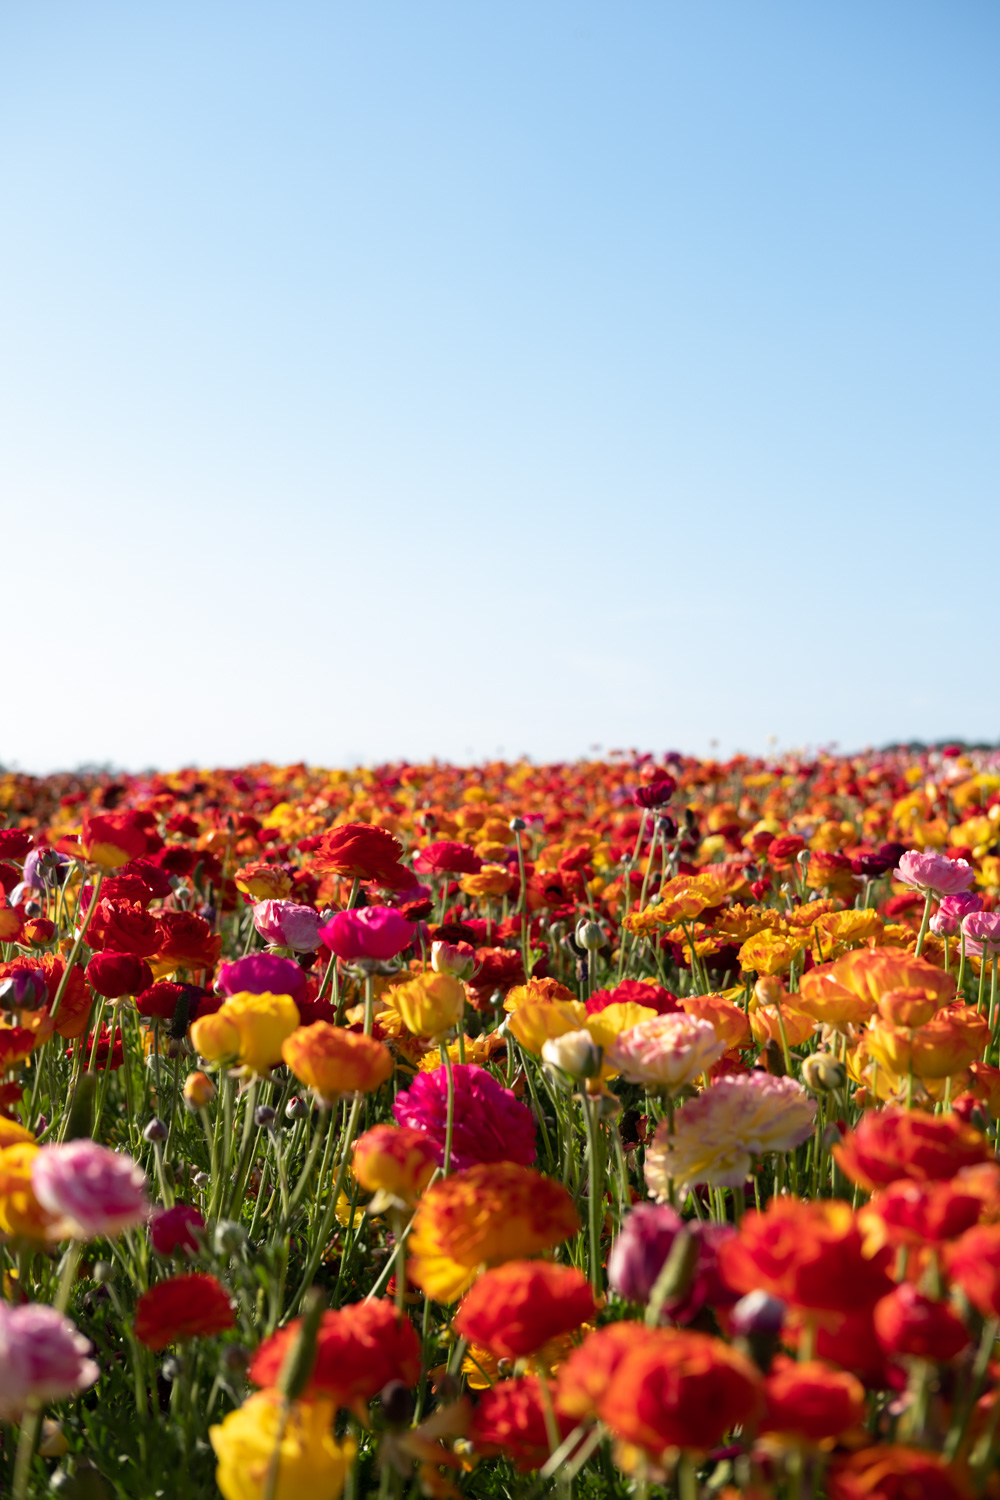 "The Flower Field Farm in Carlsbad, San Diego - travel photography and guide by © Natasha Lequepeys for ""And Then I Met Yoko"". #sandiego #california #travelguide #photoblog #travelblog #usa #sealions #fujifilm #travelphotography #landscapephotography #naturephotography #travelitinerary #2dayssandiego #pwc #westcoast #nature #flower #carlsbadflowerfields #flowerfields #flowerfarm"